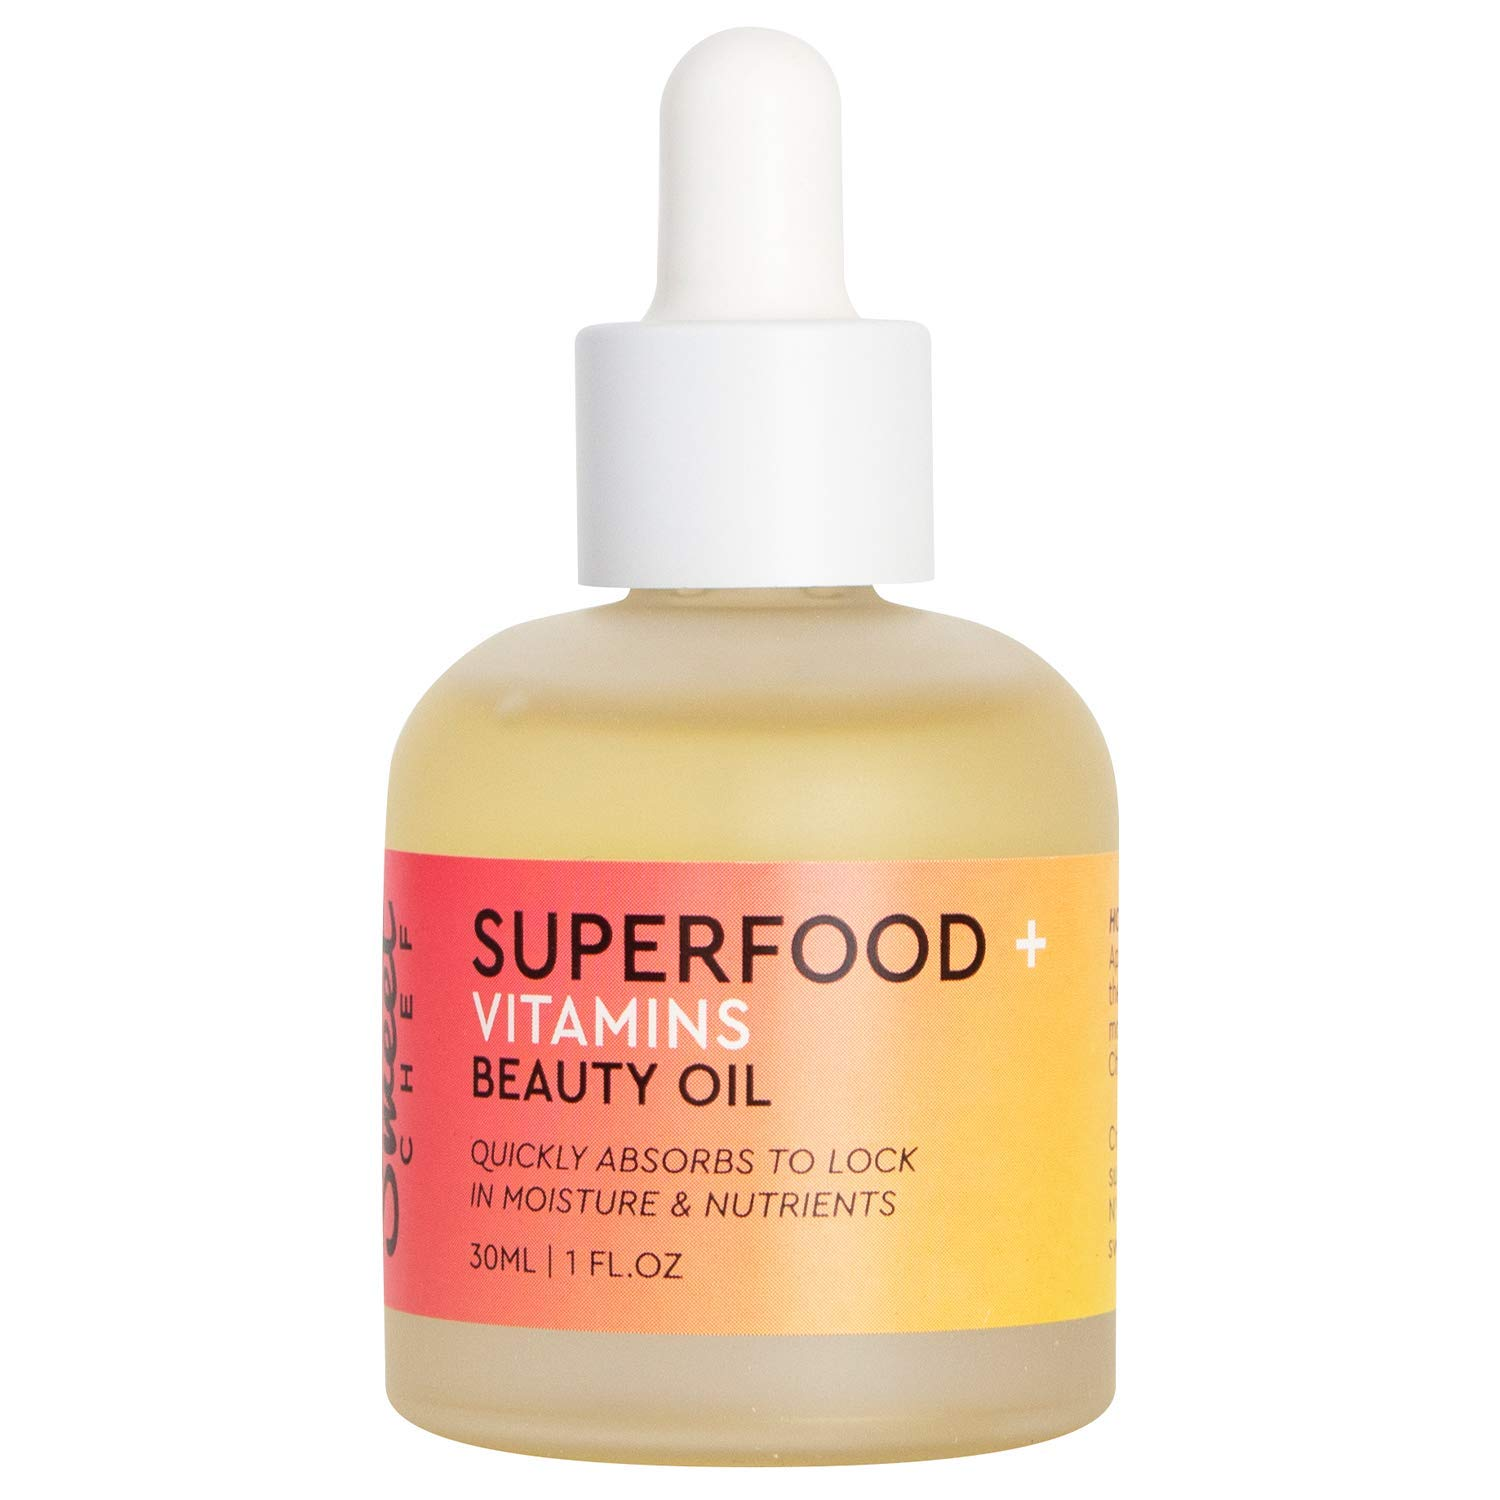 Sweet Chef Superfood + Vitamins Beauty Oil - Lightweight, Dry Facial Oil with Jojoba, Carrot Extract + Apple Seed Oil, No Mineral Oil or Synthetic Fragrance (30ml / 1 fl oz)